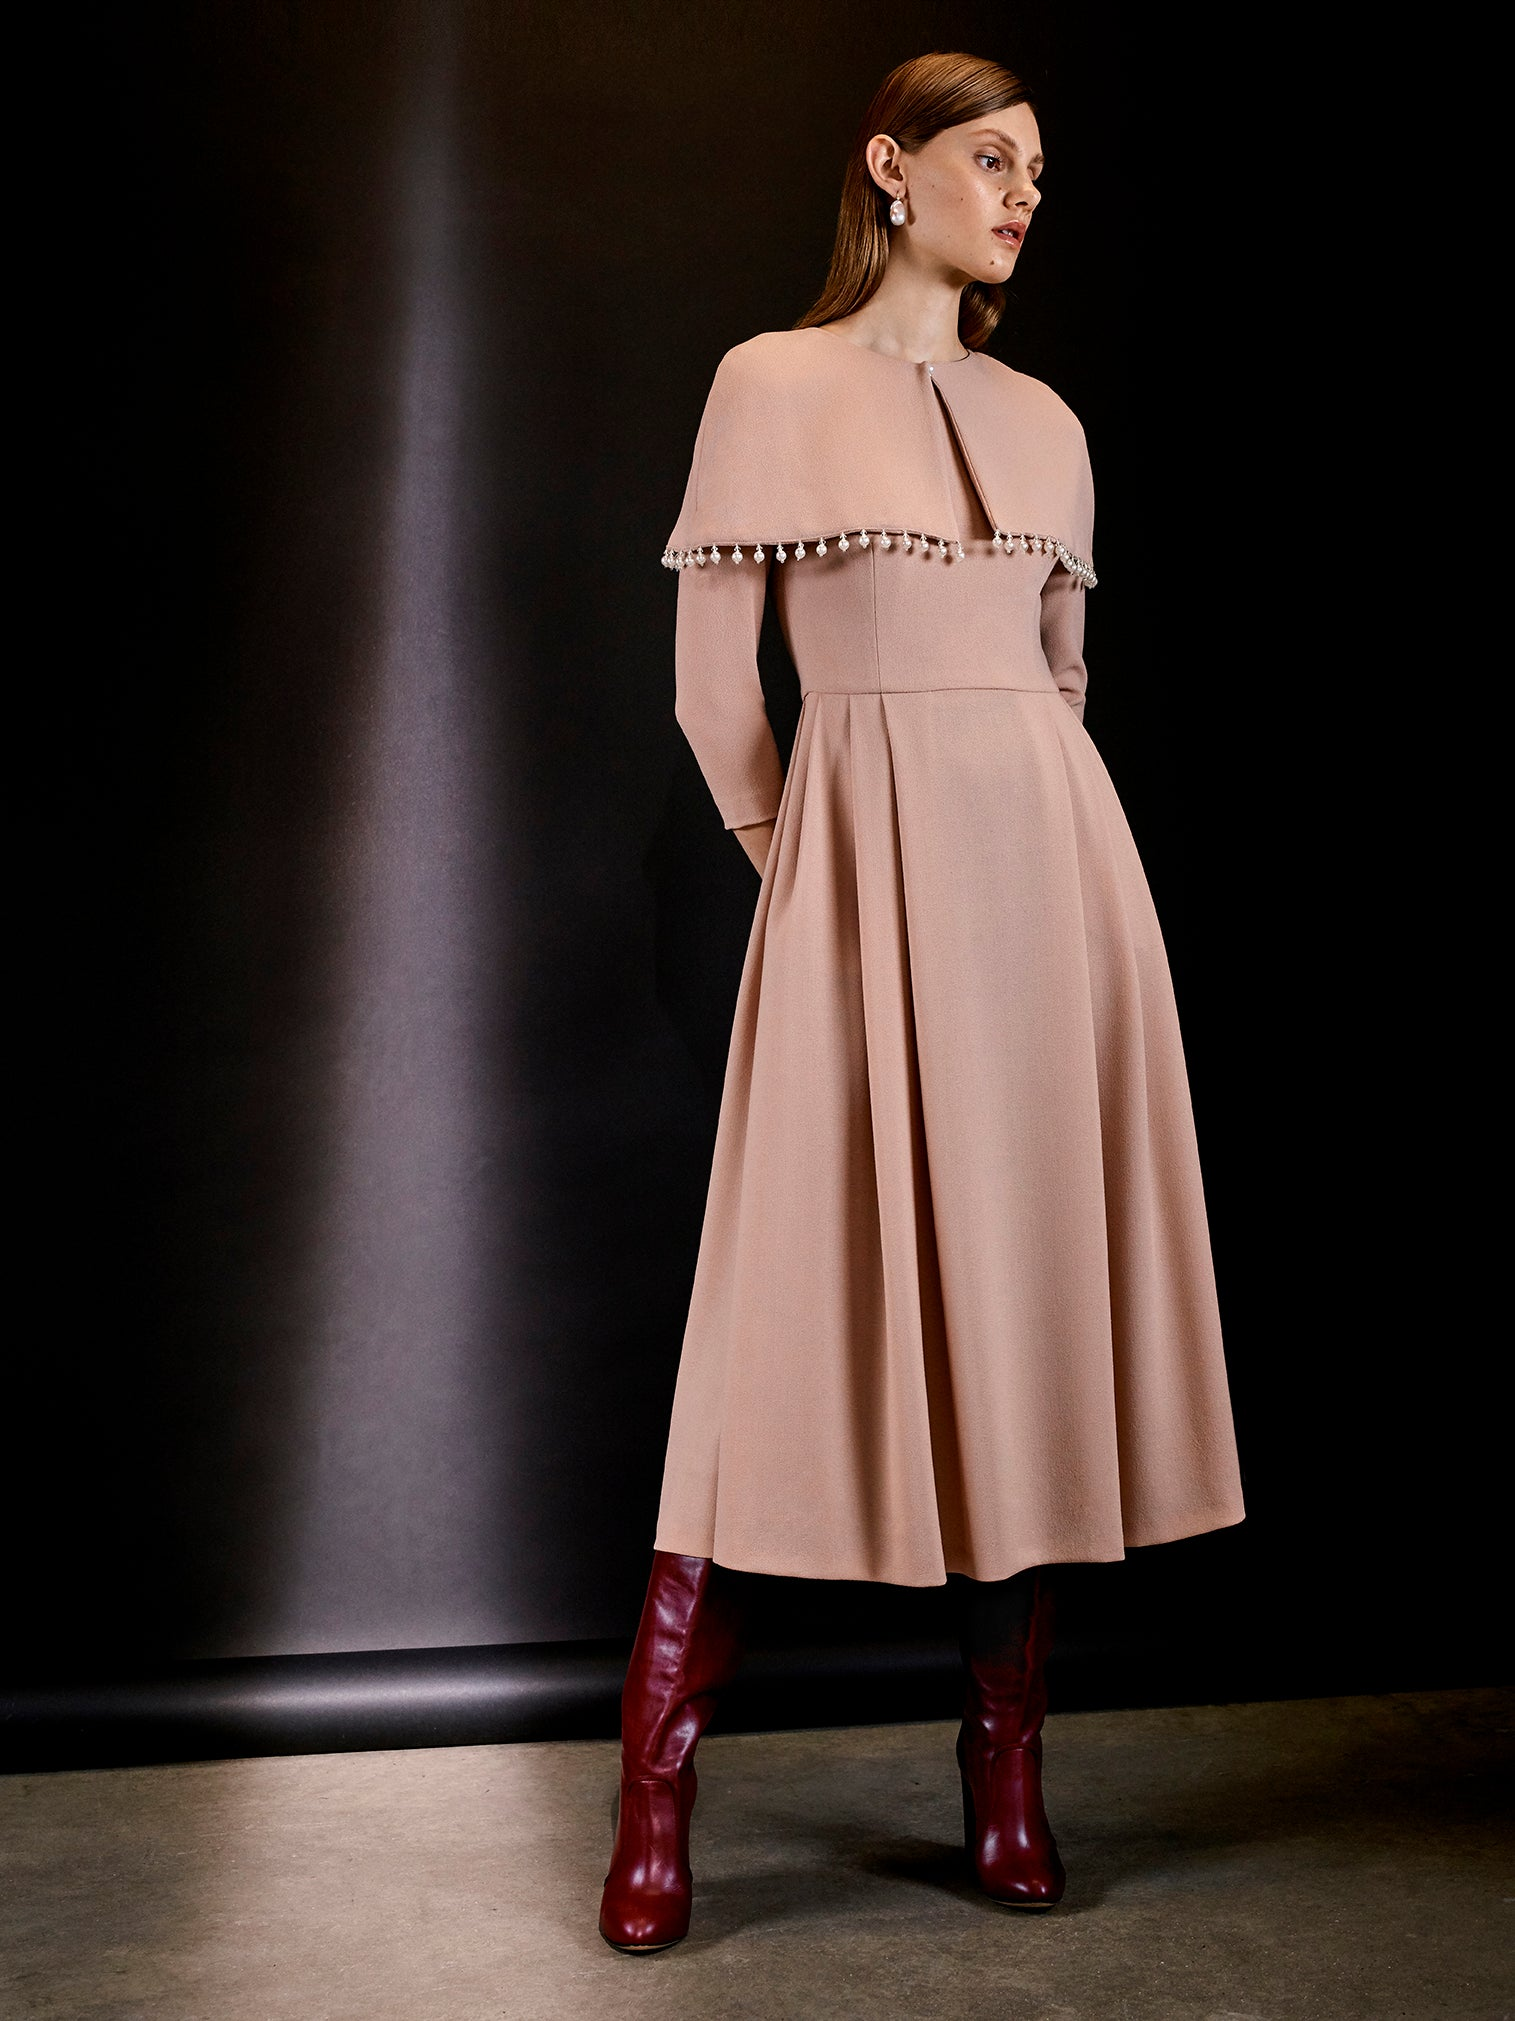 Isabelle Fox Dovima dress removable cape blush nude